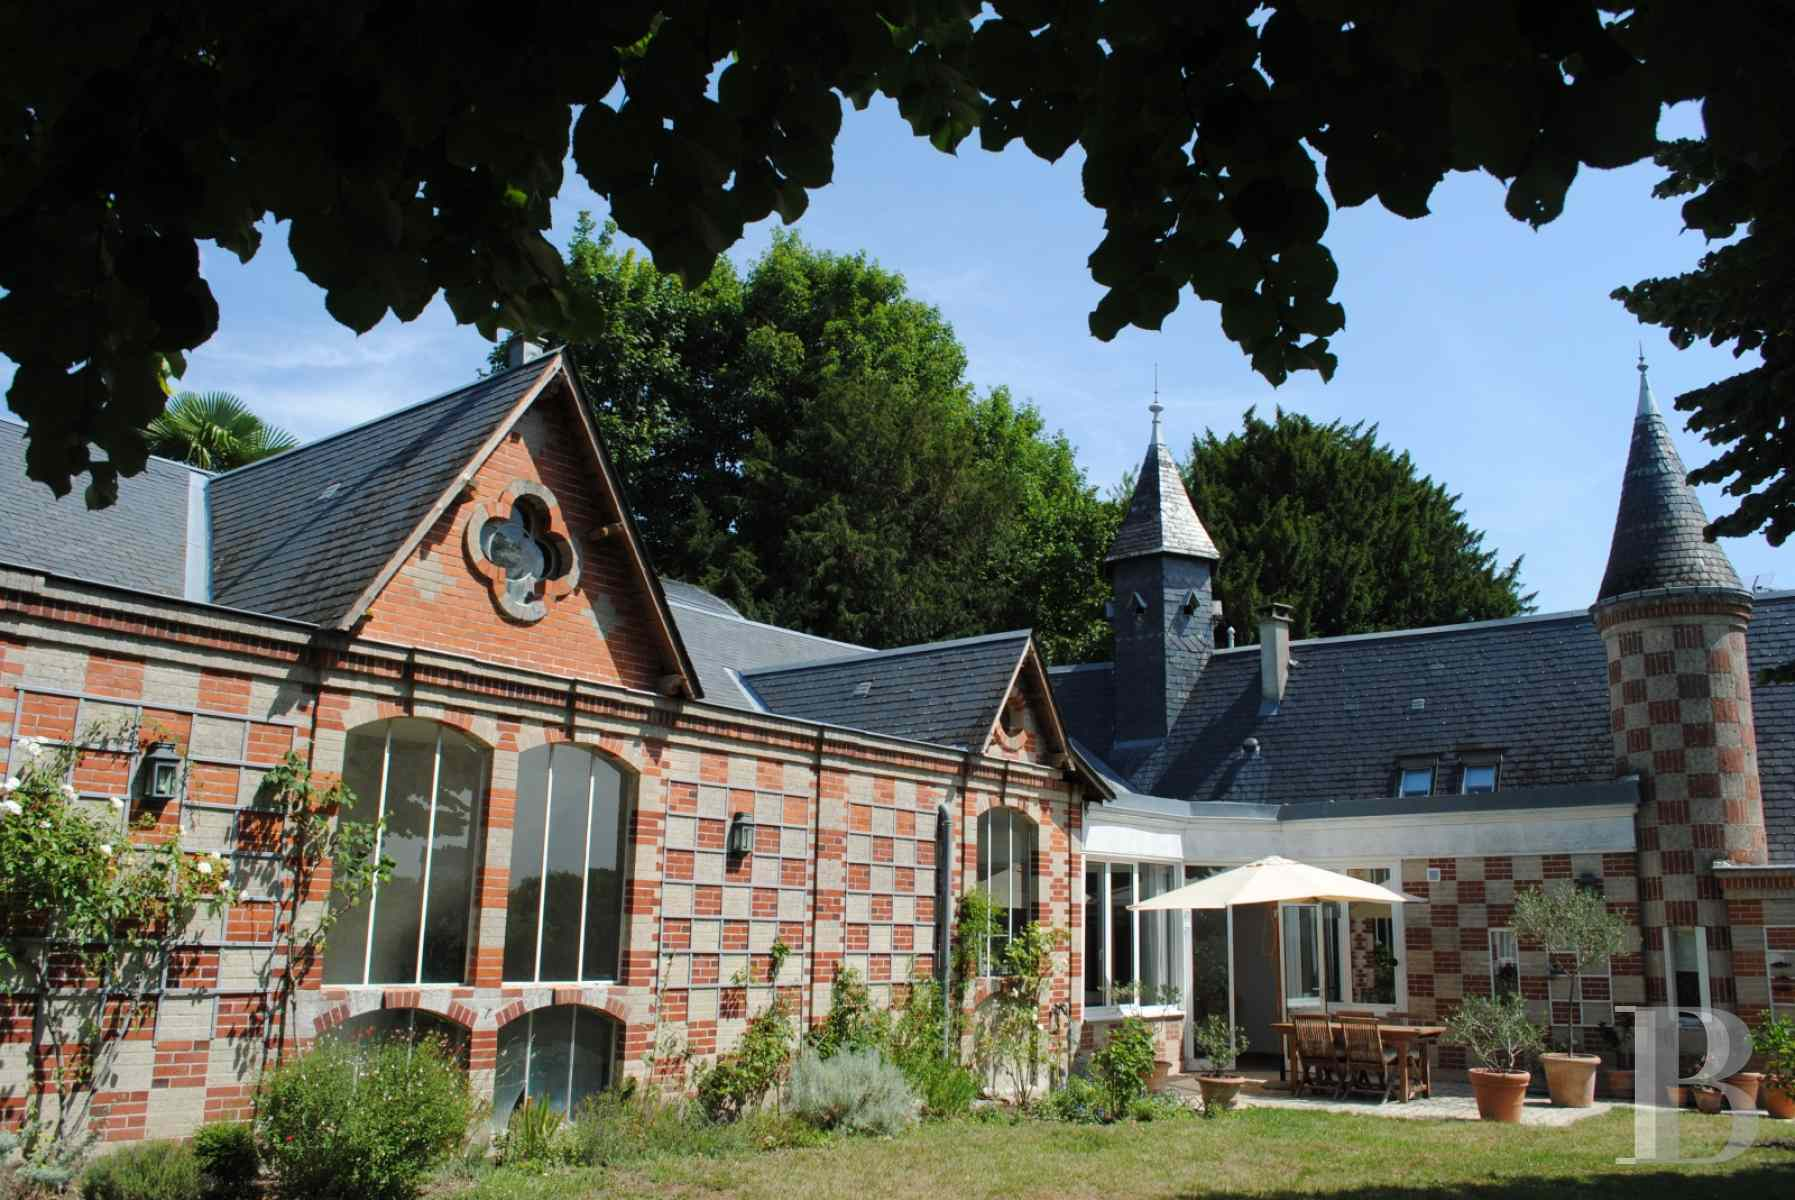 character properties France center val de loire tours property - 1 zoom